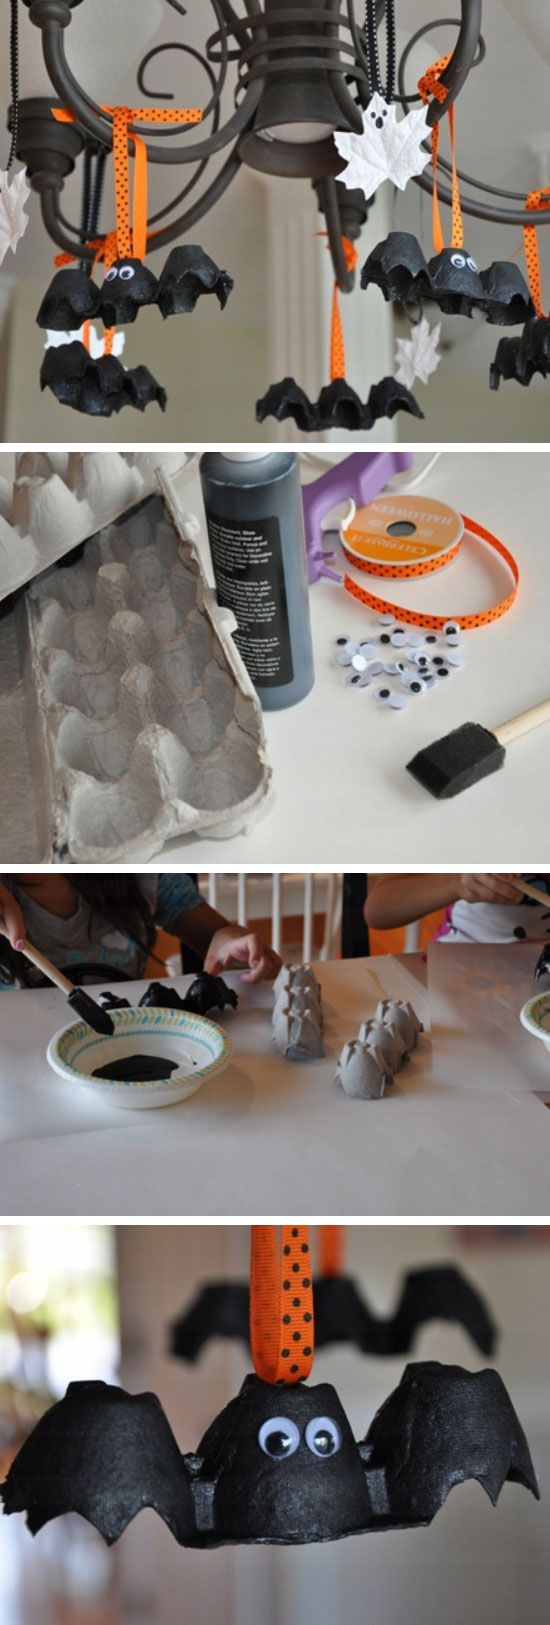 Egg Carton Bats...these are the BEST Homemade Halloween Decorations & Craft Ideas!